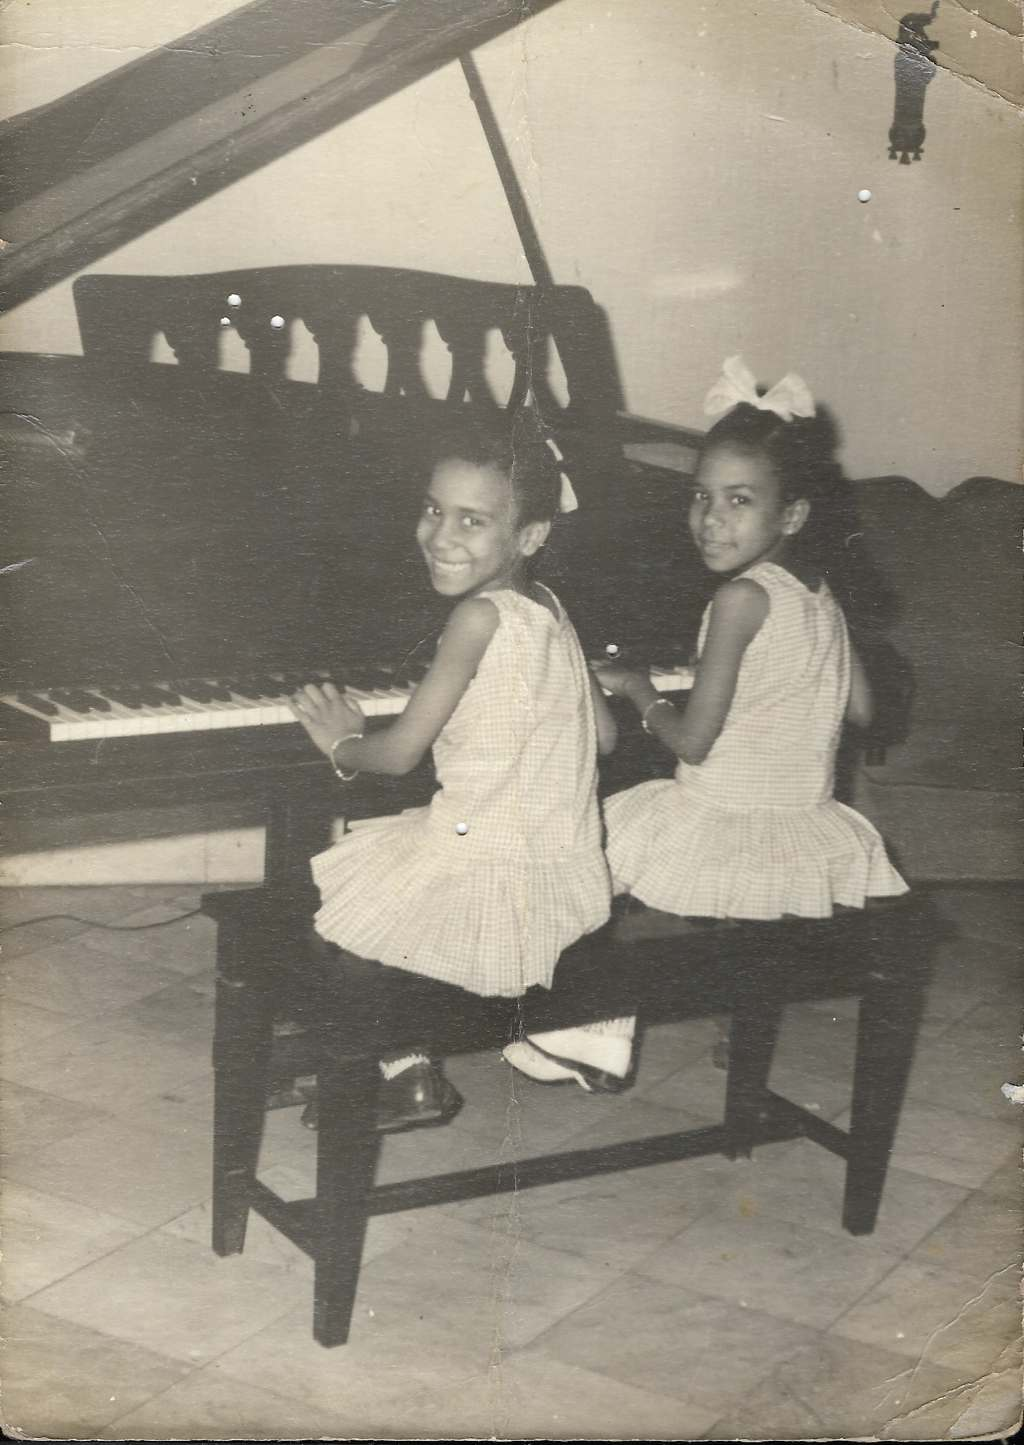 Aymée with her sister Lourdes. Photo: Courtesy of the interviewee.